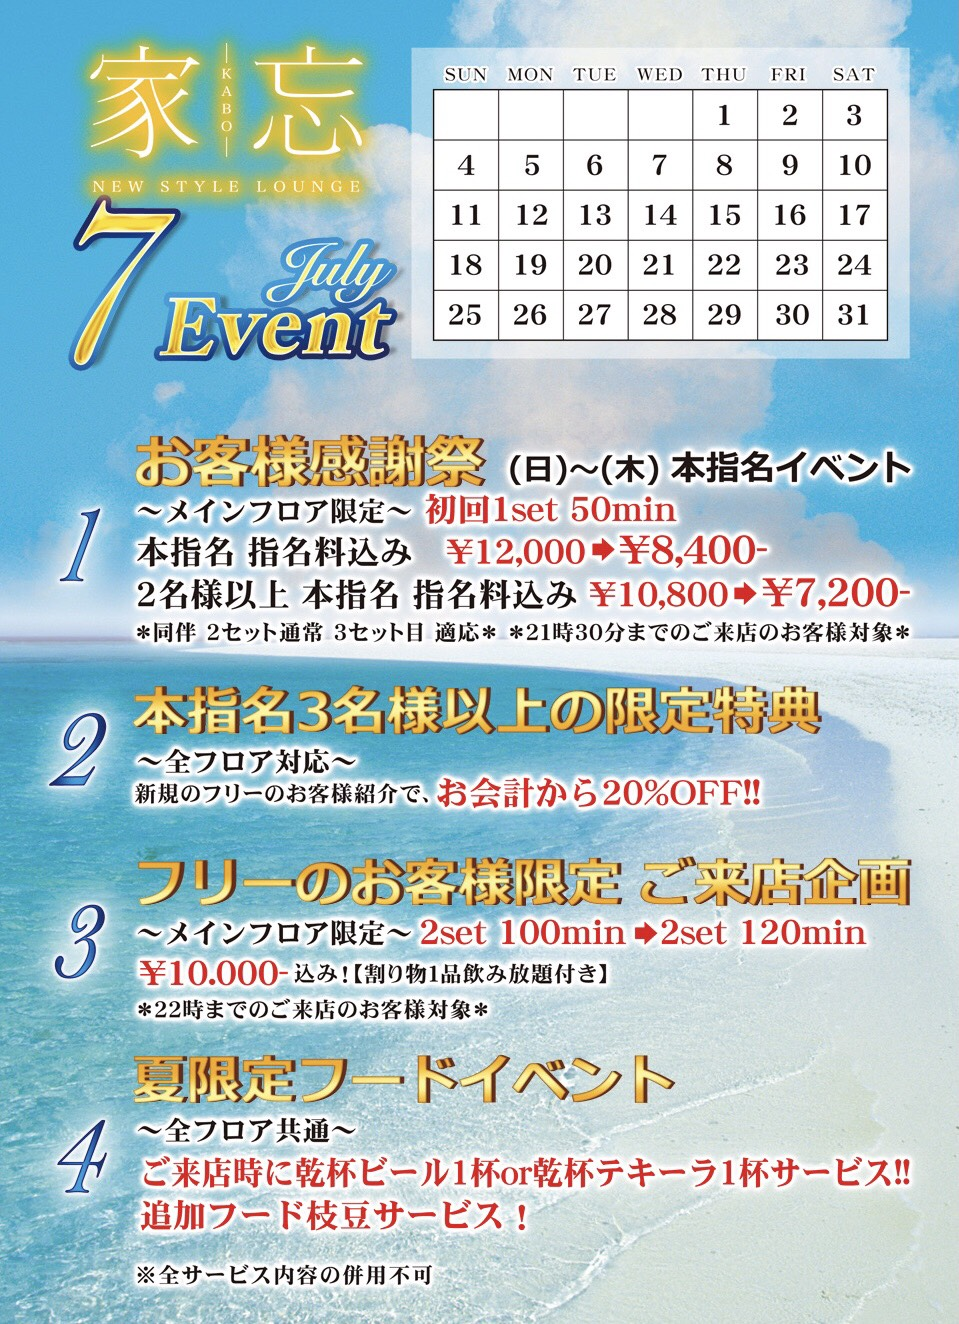 NEW STYLE LOUNGE 家忘-KABO-(・∀・) 7月 イベント情報